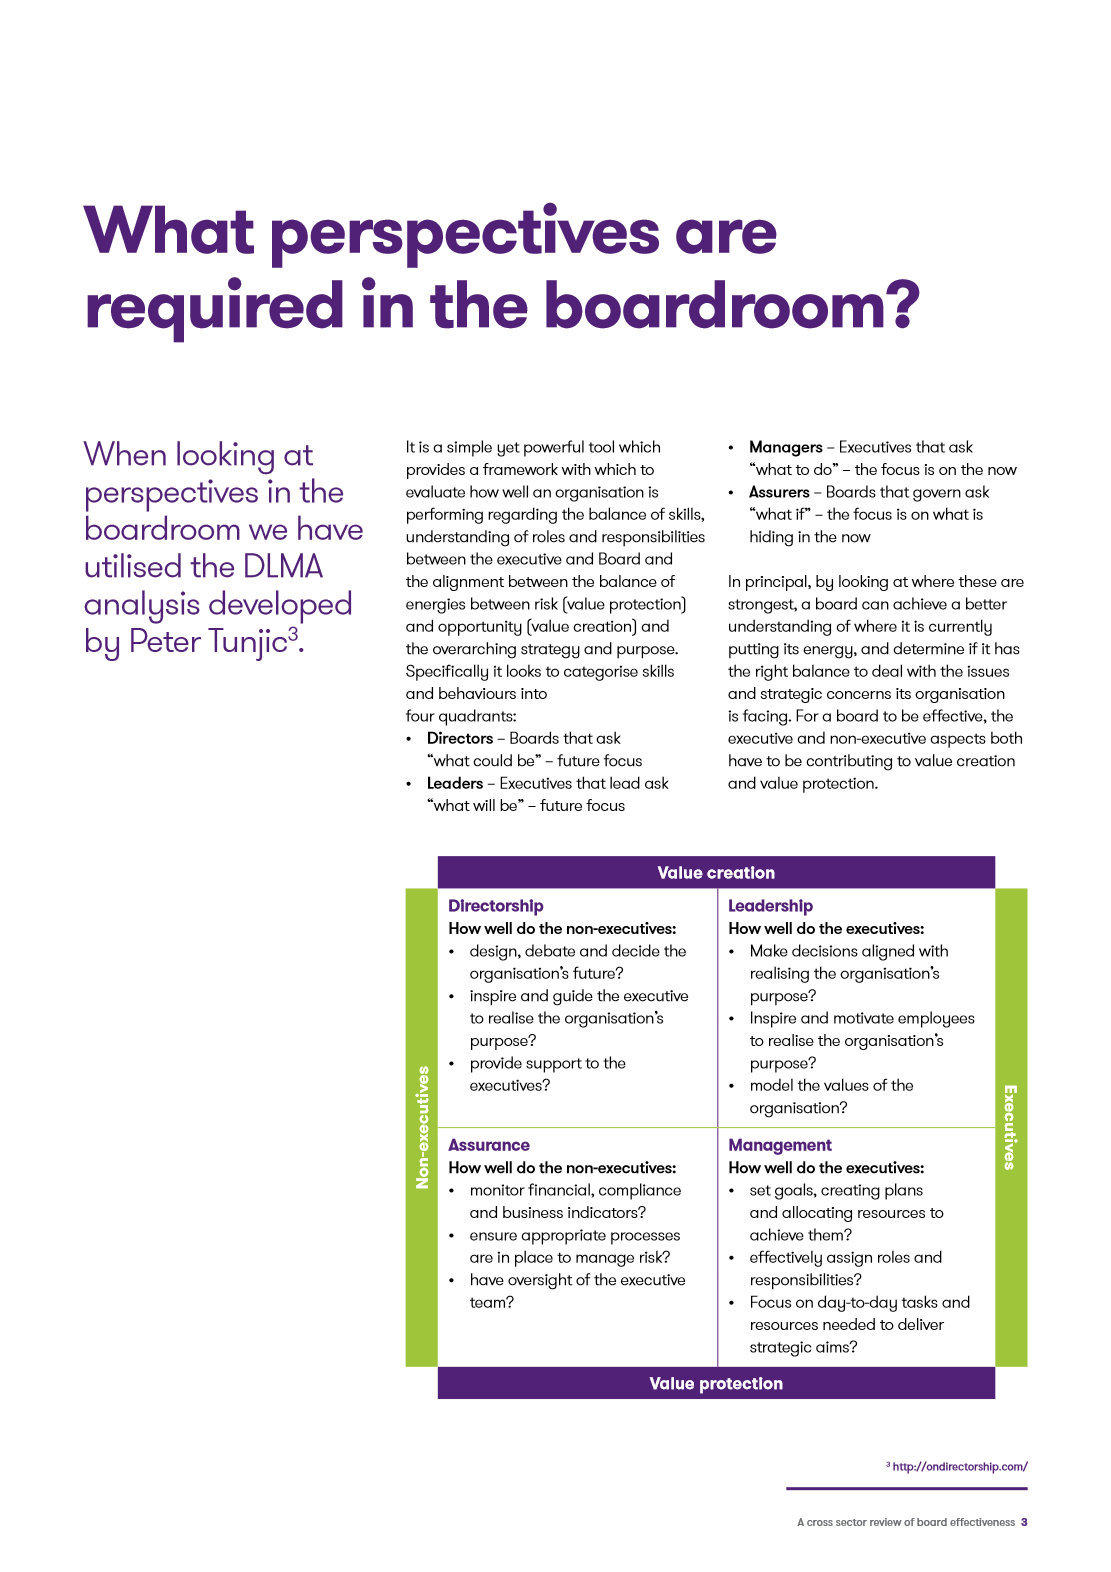 - Source: http://www.grantthornton.co.uk/insights/the-board-creating-and-protecting-value/